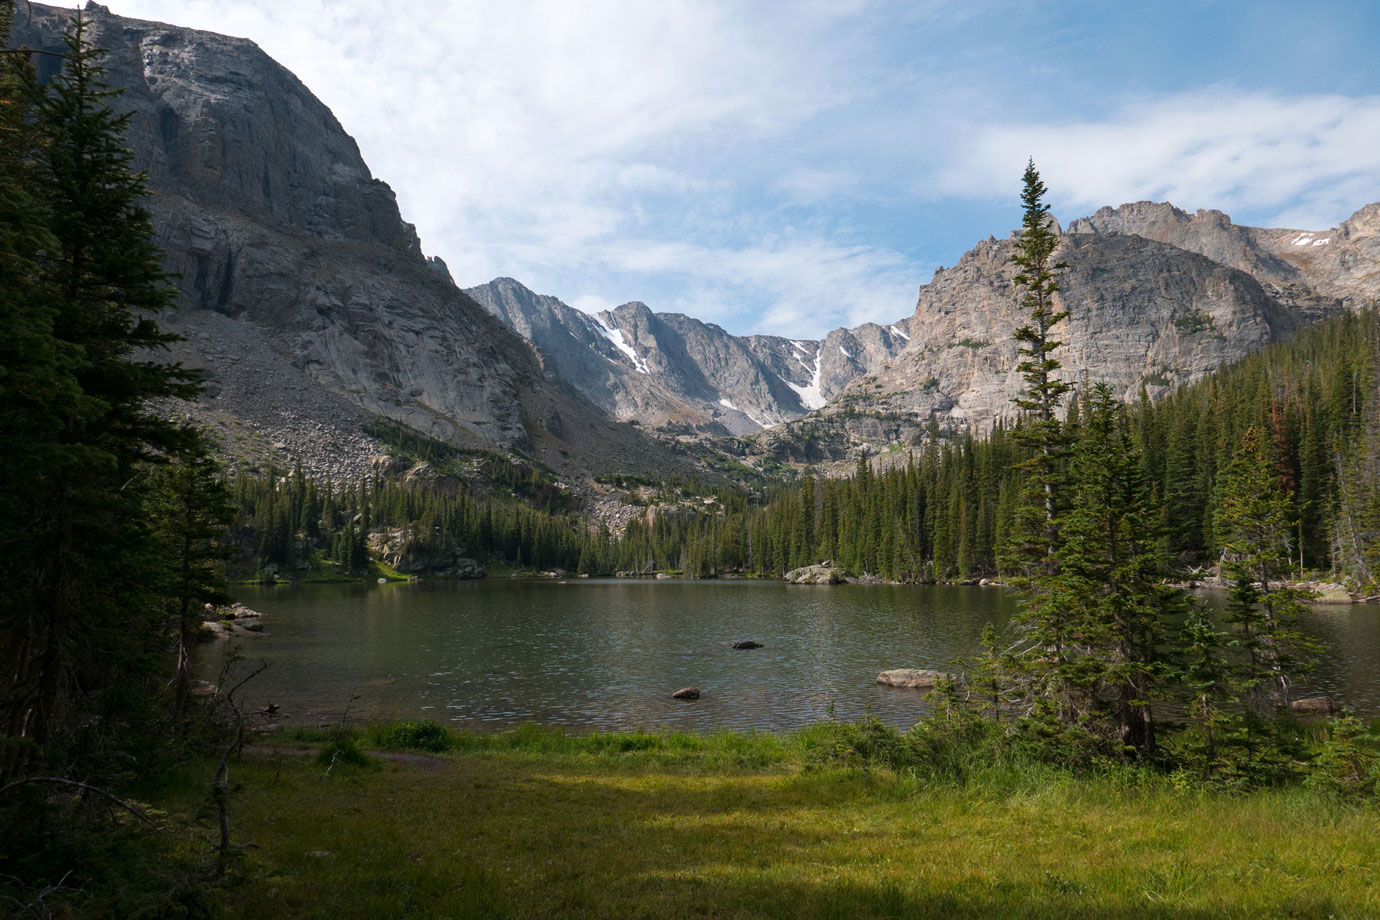 The Loch, Rocky Mountain National Park